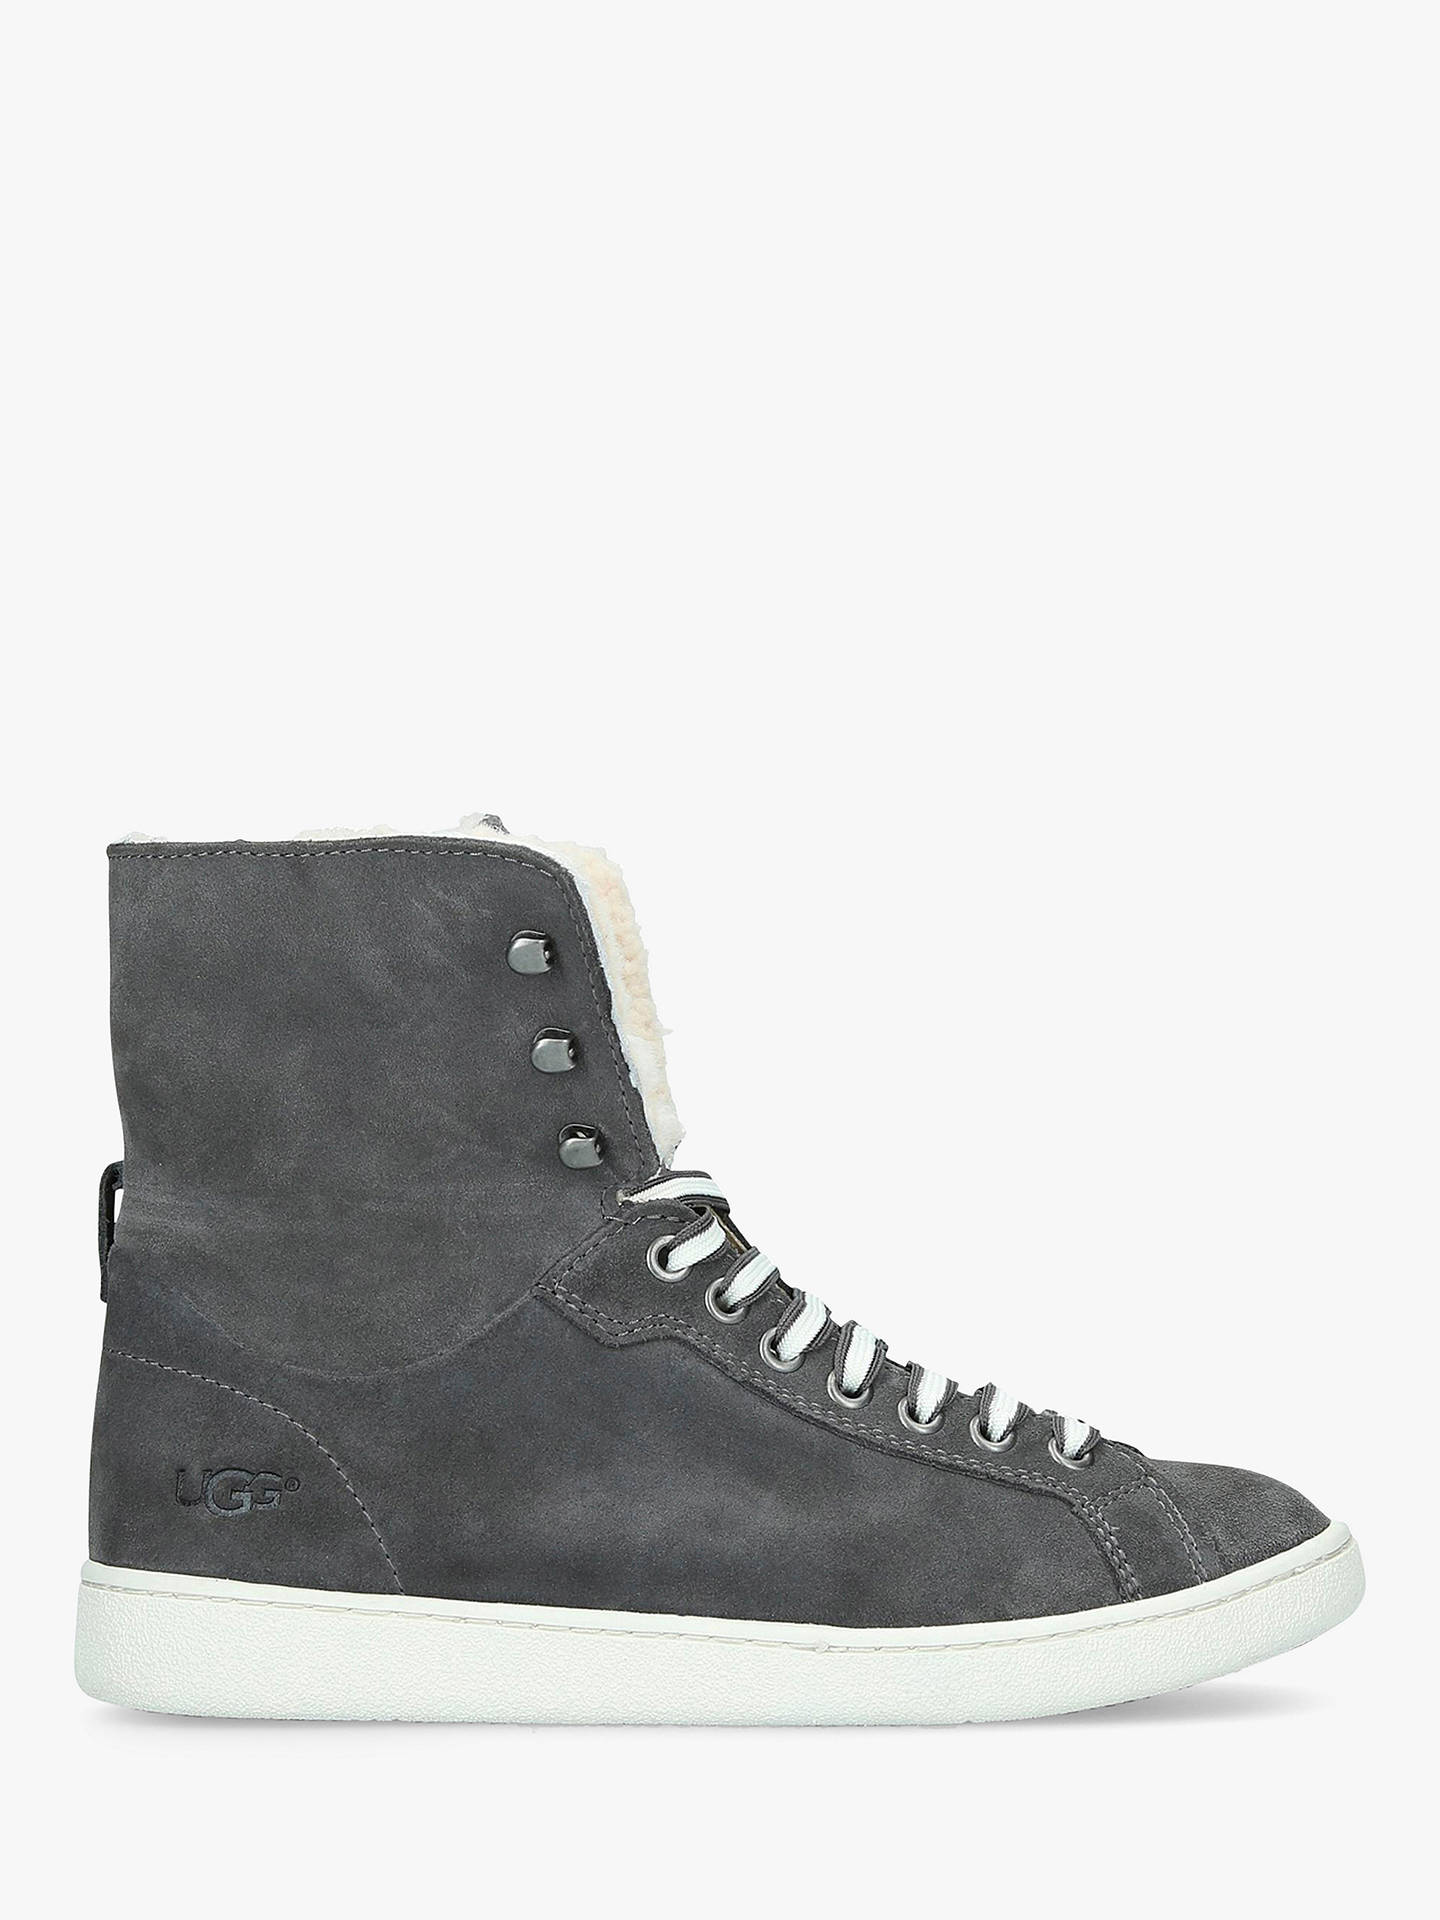 2fd087006a8 UGG Starlyn Sheepskin High Top Trainers, Mid Grey Suede at John ...